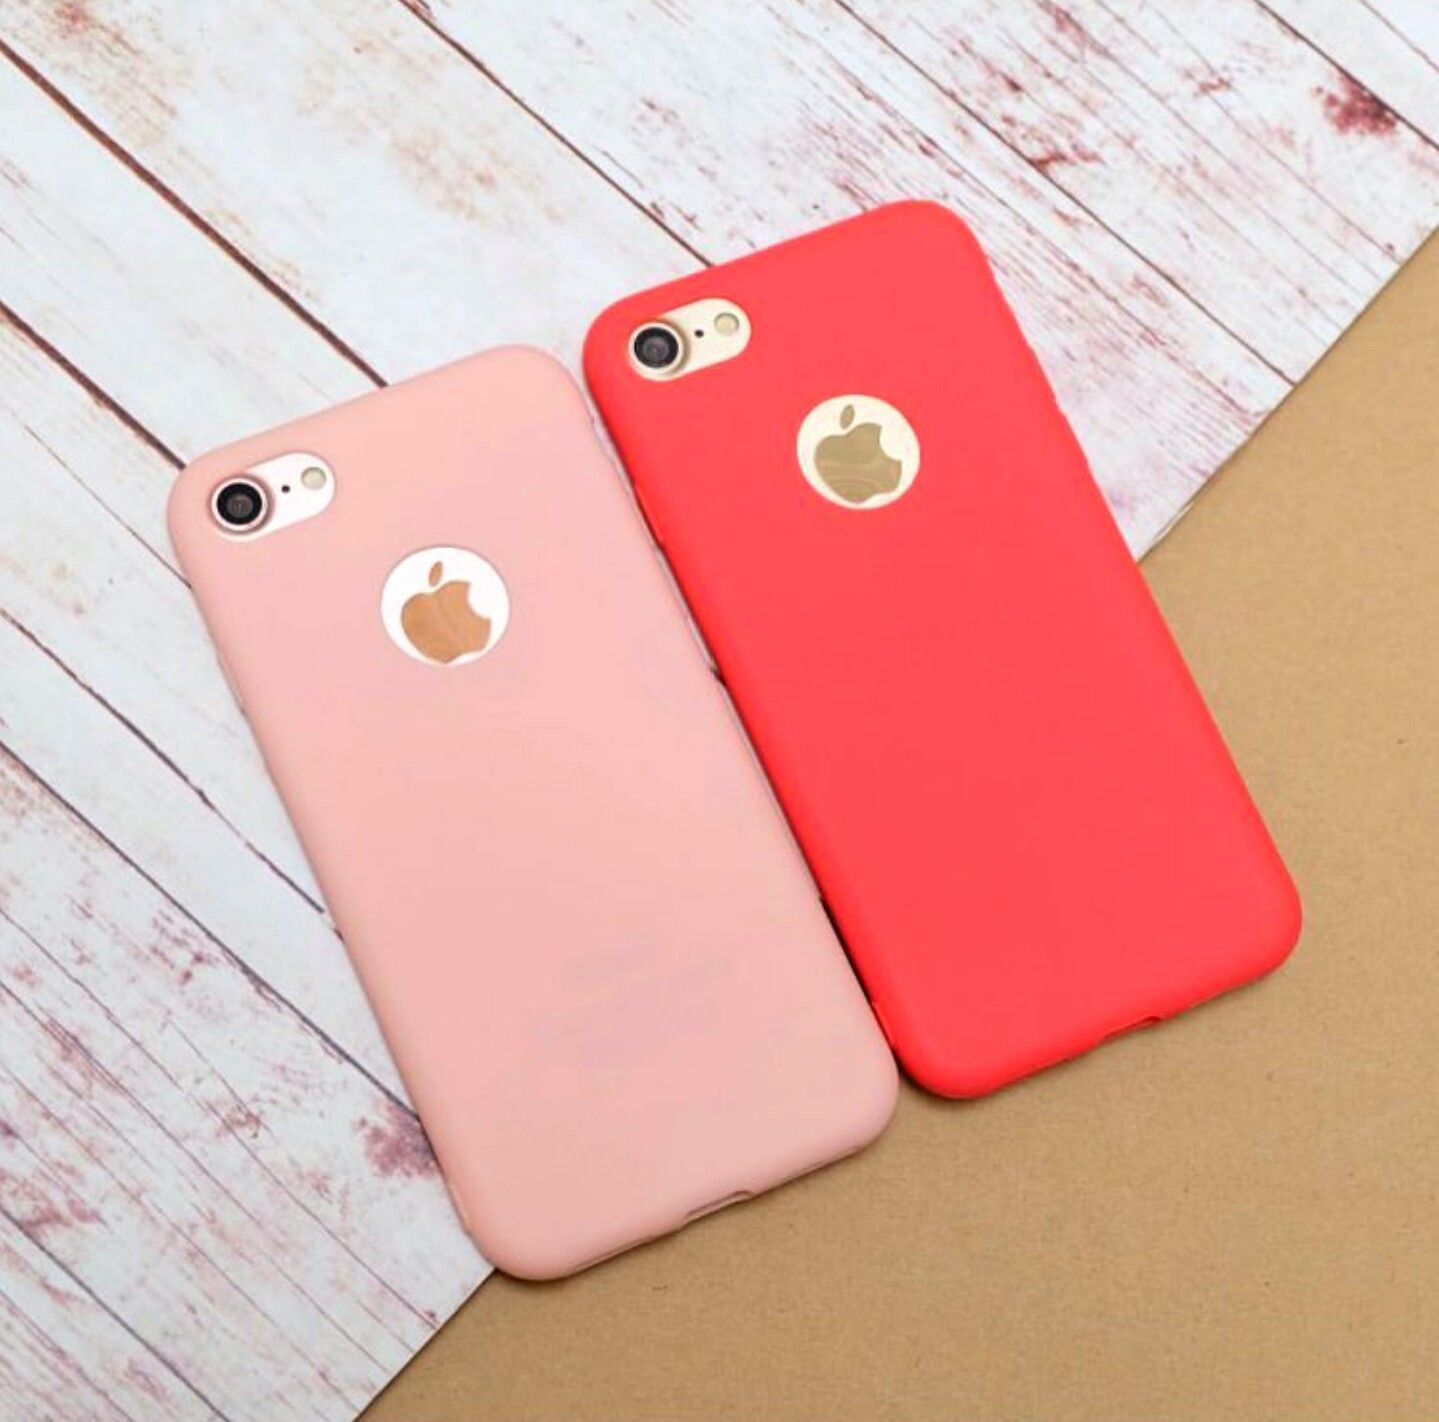 b8bc996e877 Matte Candy Color Silicone Soft iPhone 7 / 8 Cases in 2019 | iPhone ...